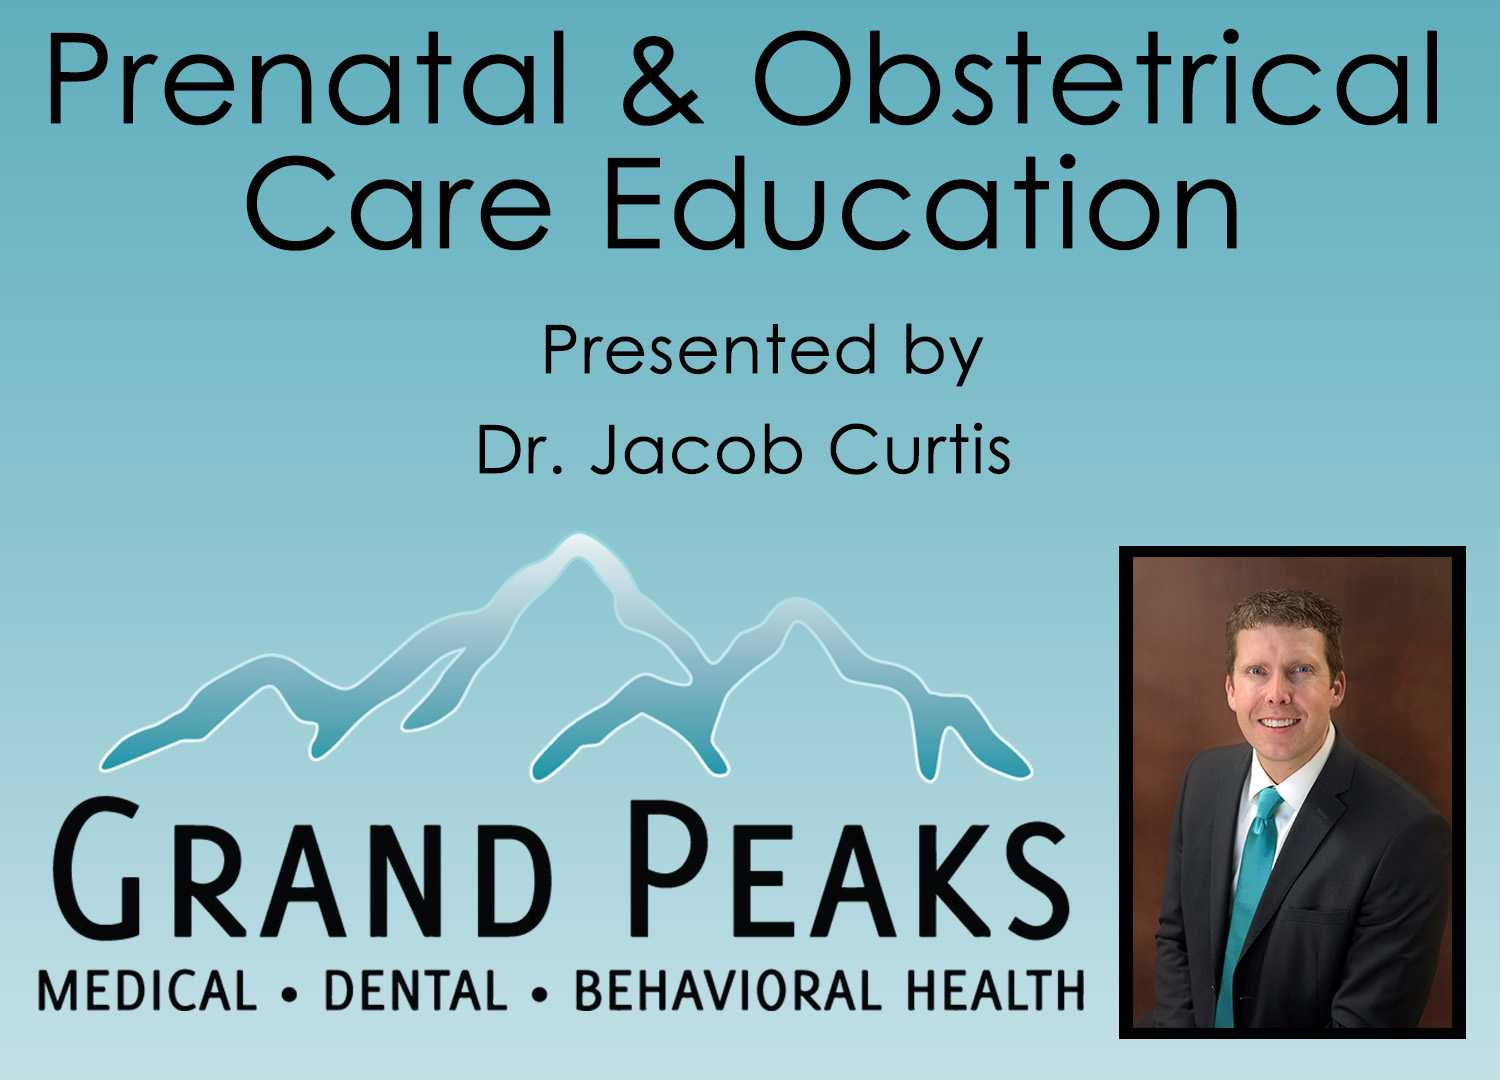 Prenatal Care & Obstetrical Care by Dr. Jacob Curtis